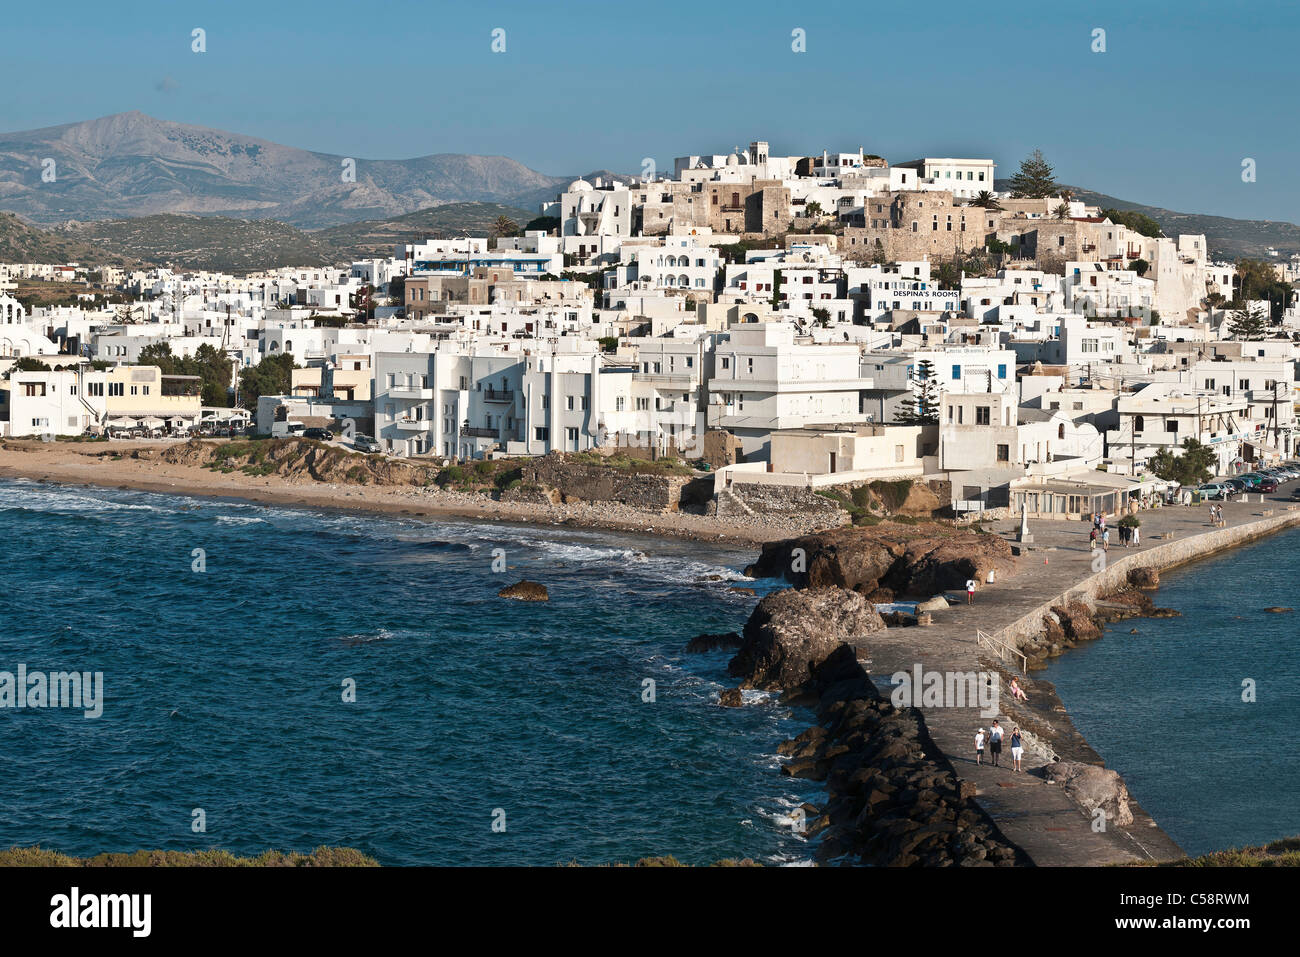 Looking across to the Old town of Naxos, from the Palateia, Peninsula, Naxos island, Cyclades, Greece - Stock Image